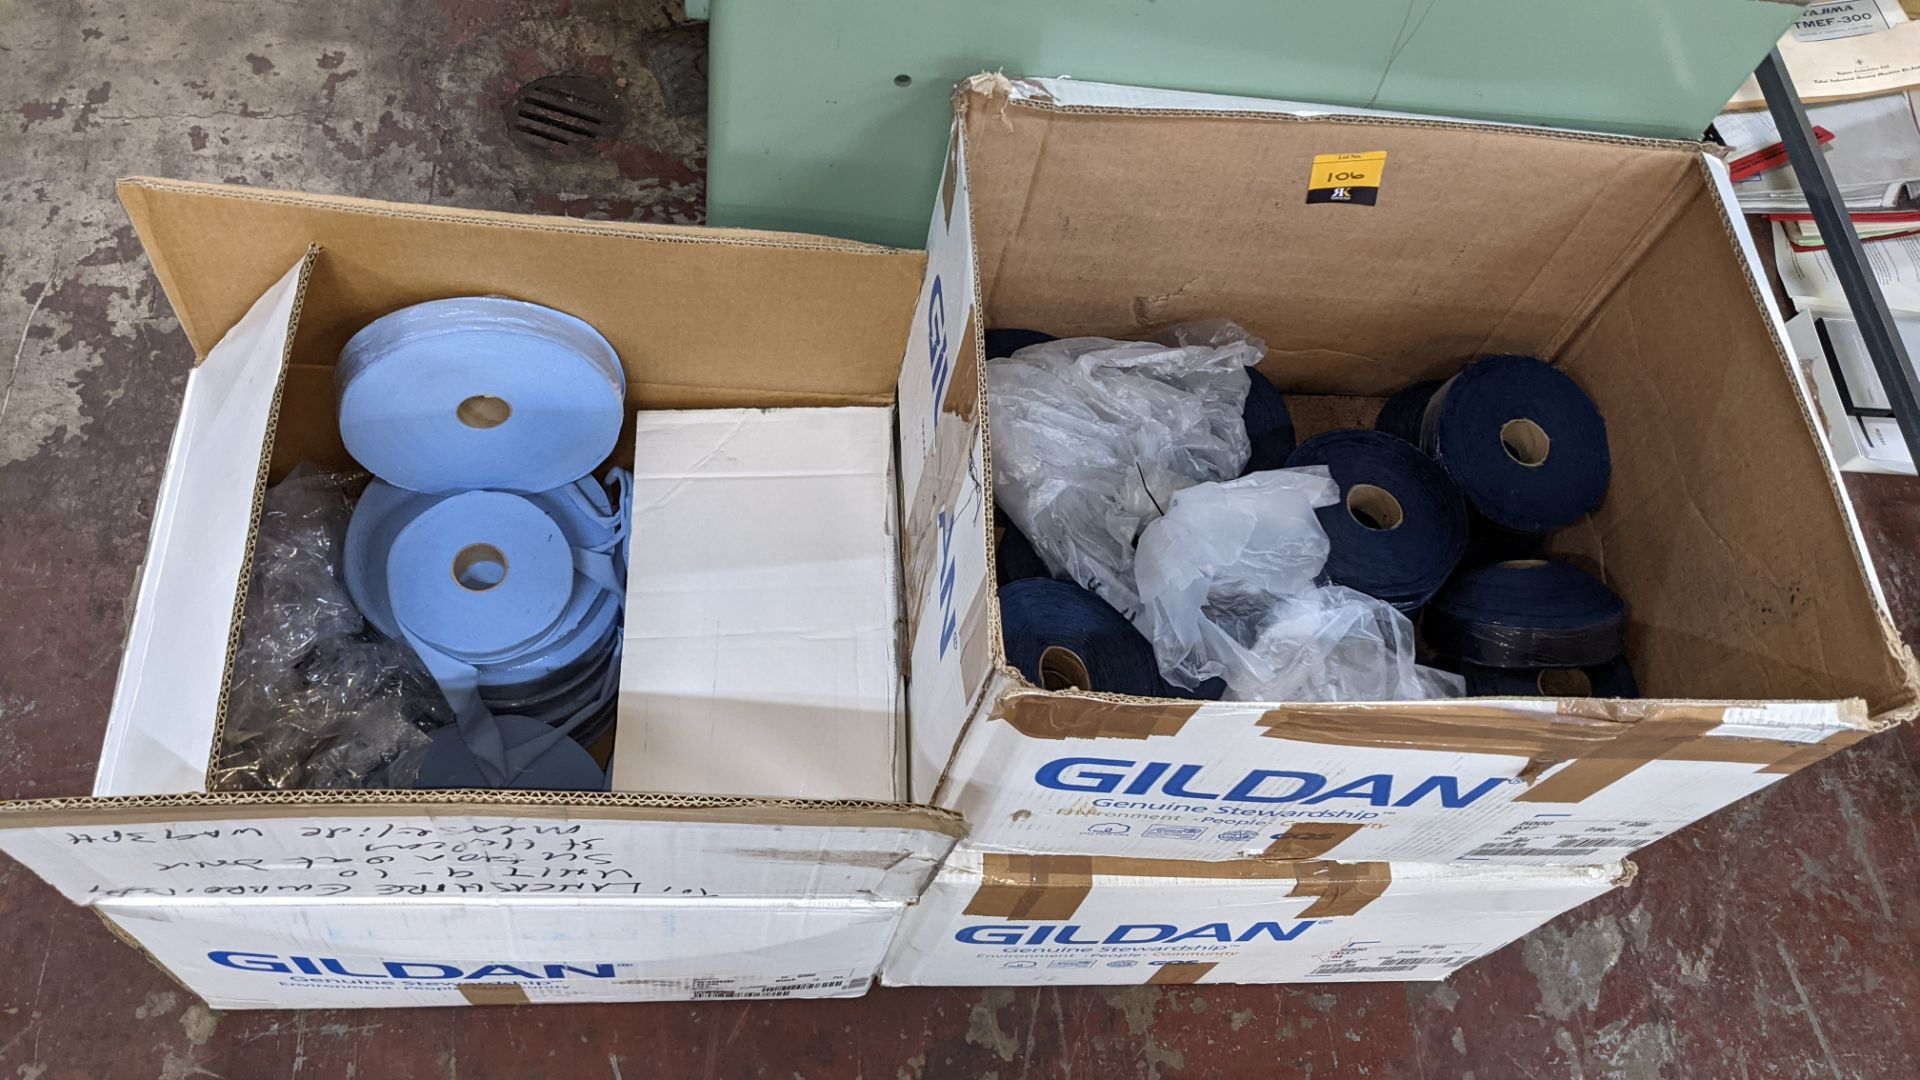 3 boxes/part boxes of blue fabric tape